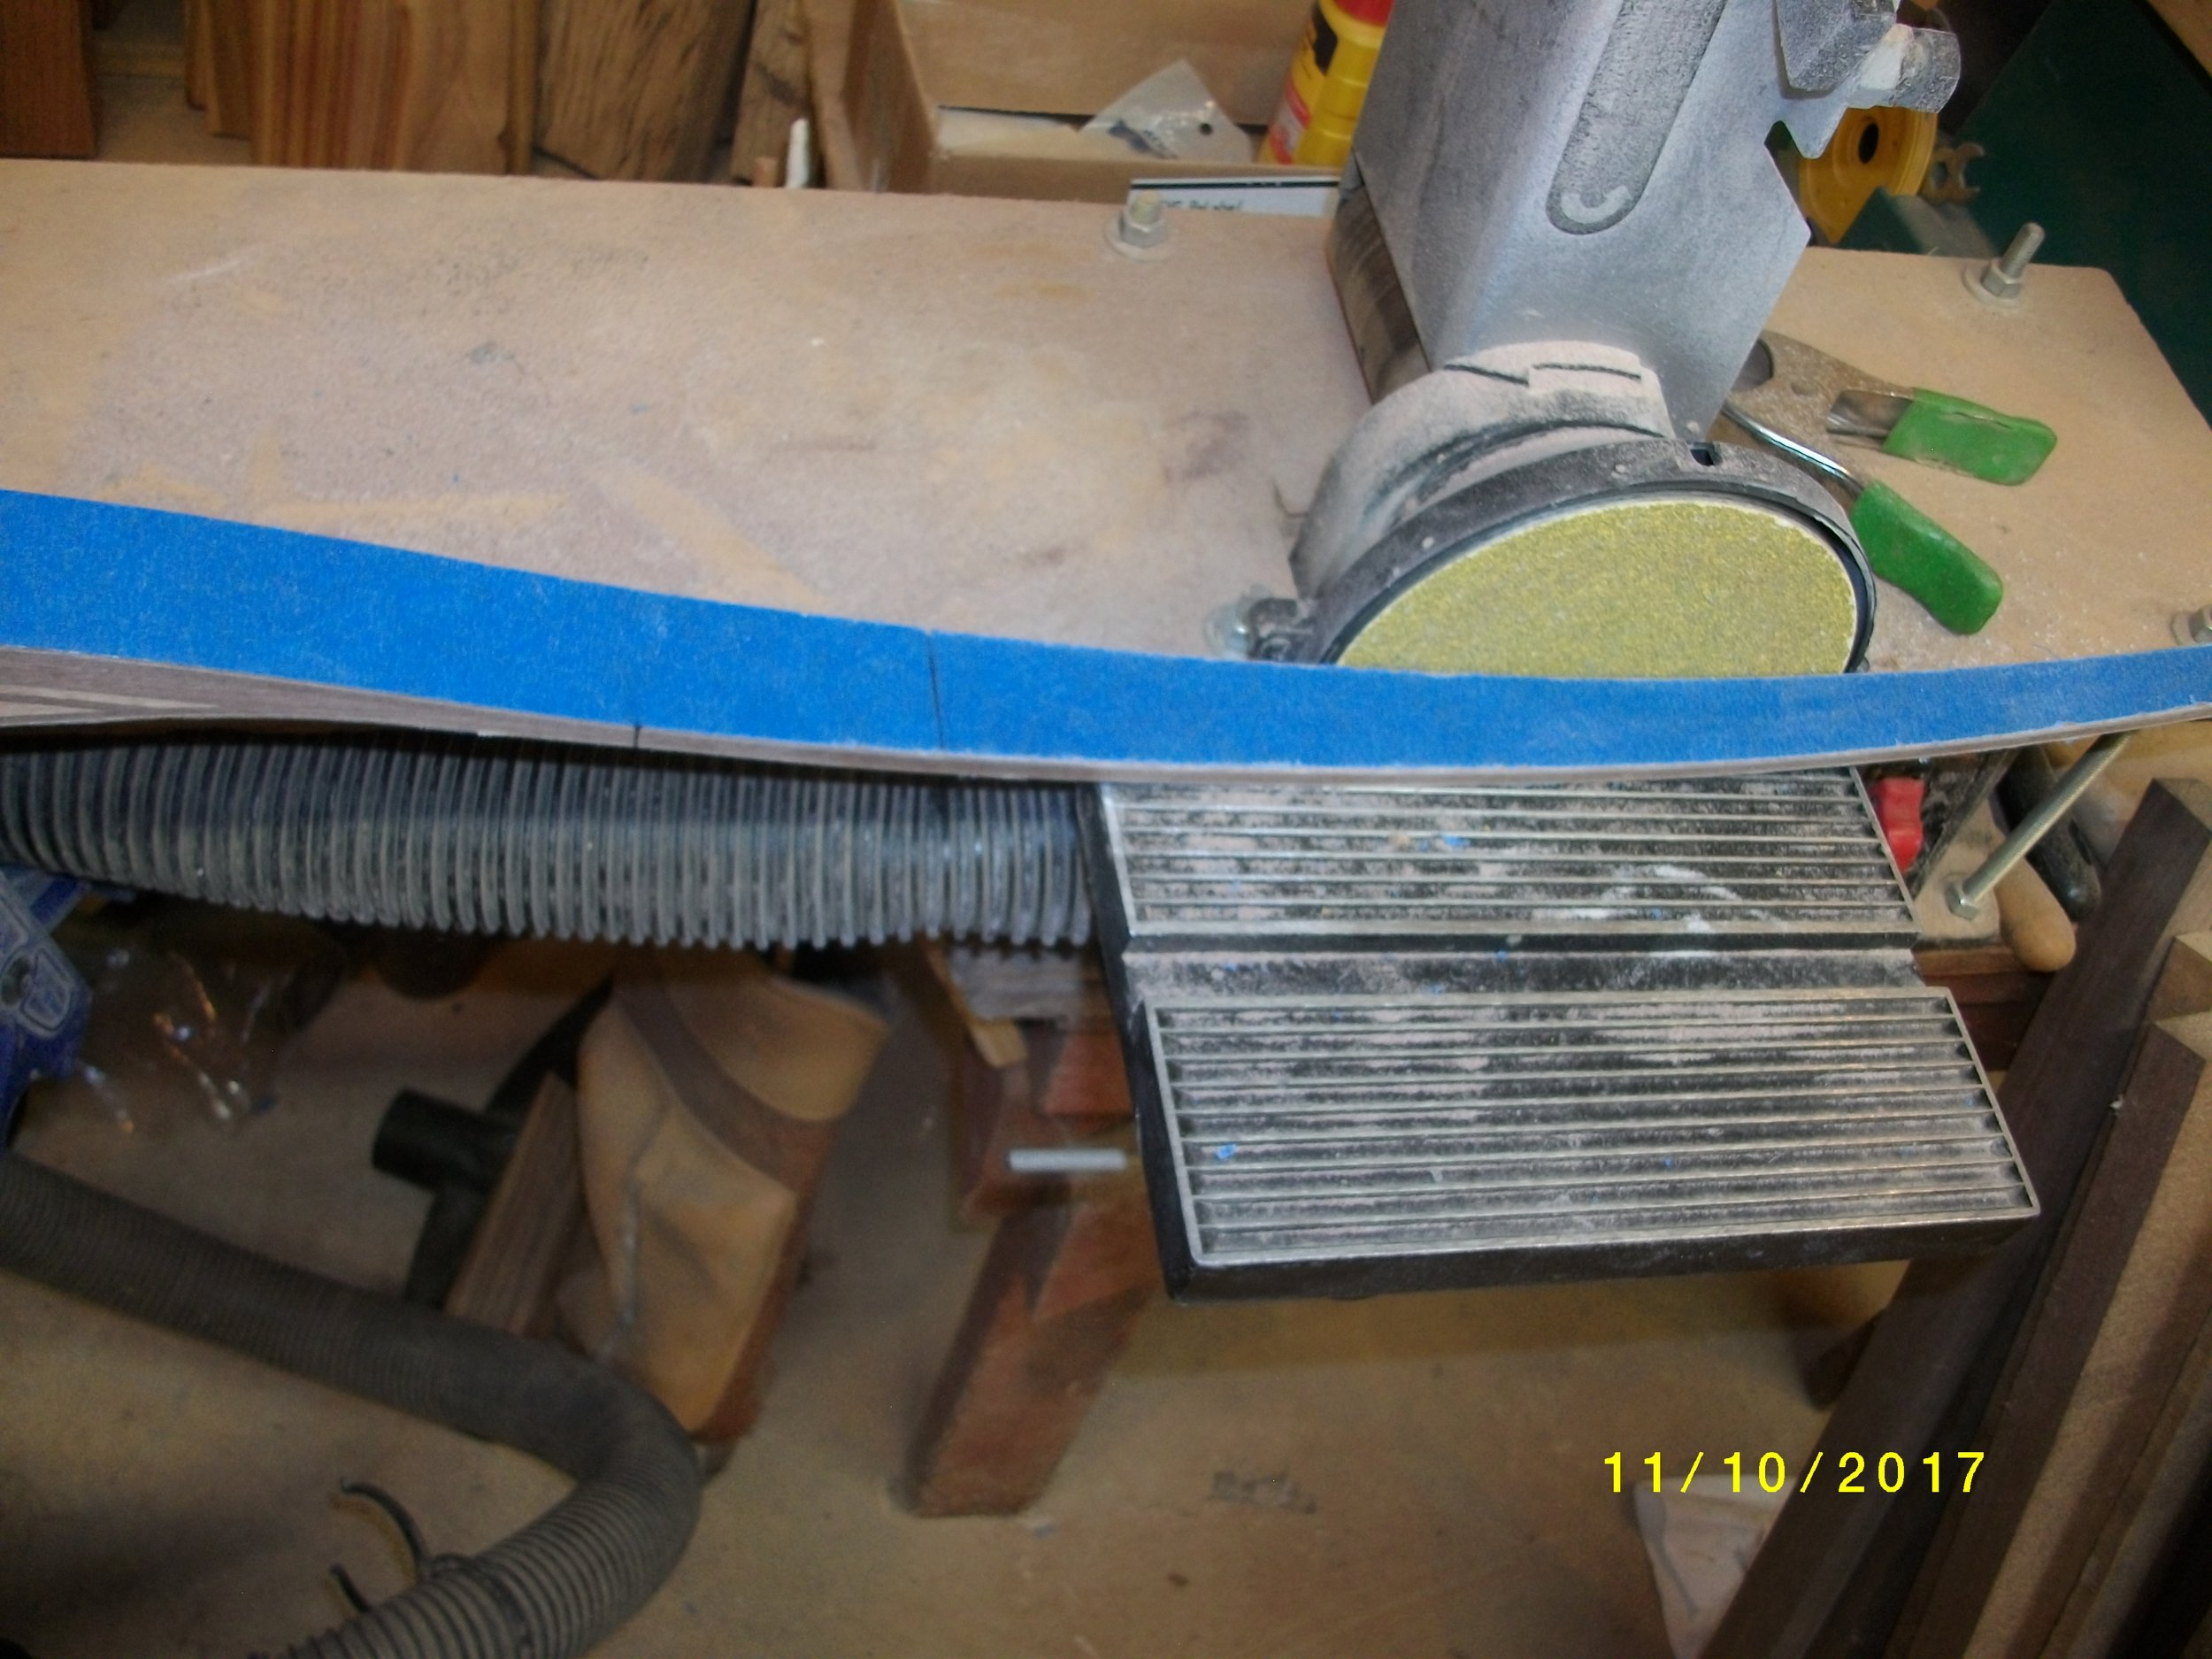 """OK, now I have at the nocks, marked 5/16 each way from the center mark we found with the string. I will end up at 1/2"""" total width but like to start at 5/8"""" in case it needs tweaking a bit.  Then I go out from center 12"""" to get past riser fades, and clamp the yardstick to the limb from the edge of limb at this mark to the mark I measured off center at nocks. Mark ans proceed to cut or grind to the line. I refuse to cut glass with my bandsaw so I grind it on an ancient Skil disc sander with 40 grit paper. Takes about 15 minutes to do a bow, rotating so I don't get anything hot . Slow and easy and don't breathe the dust!! Get some dust collection and a mask for this operation!"""